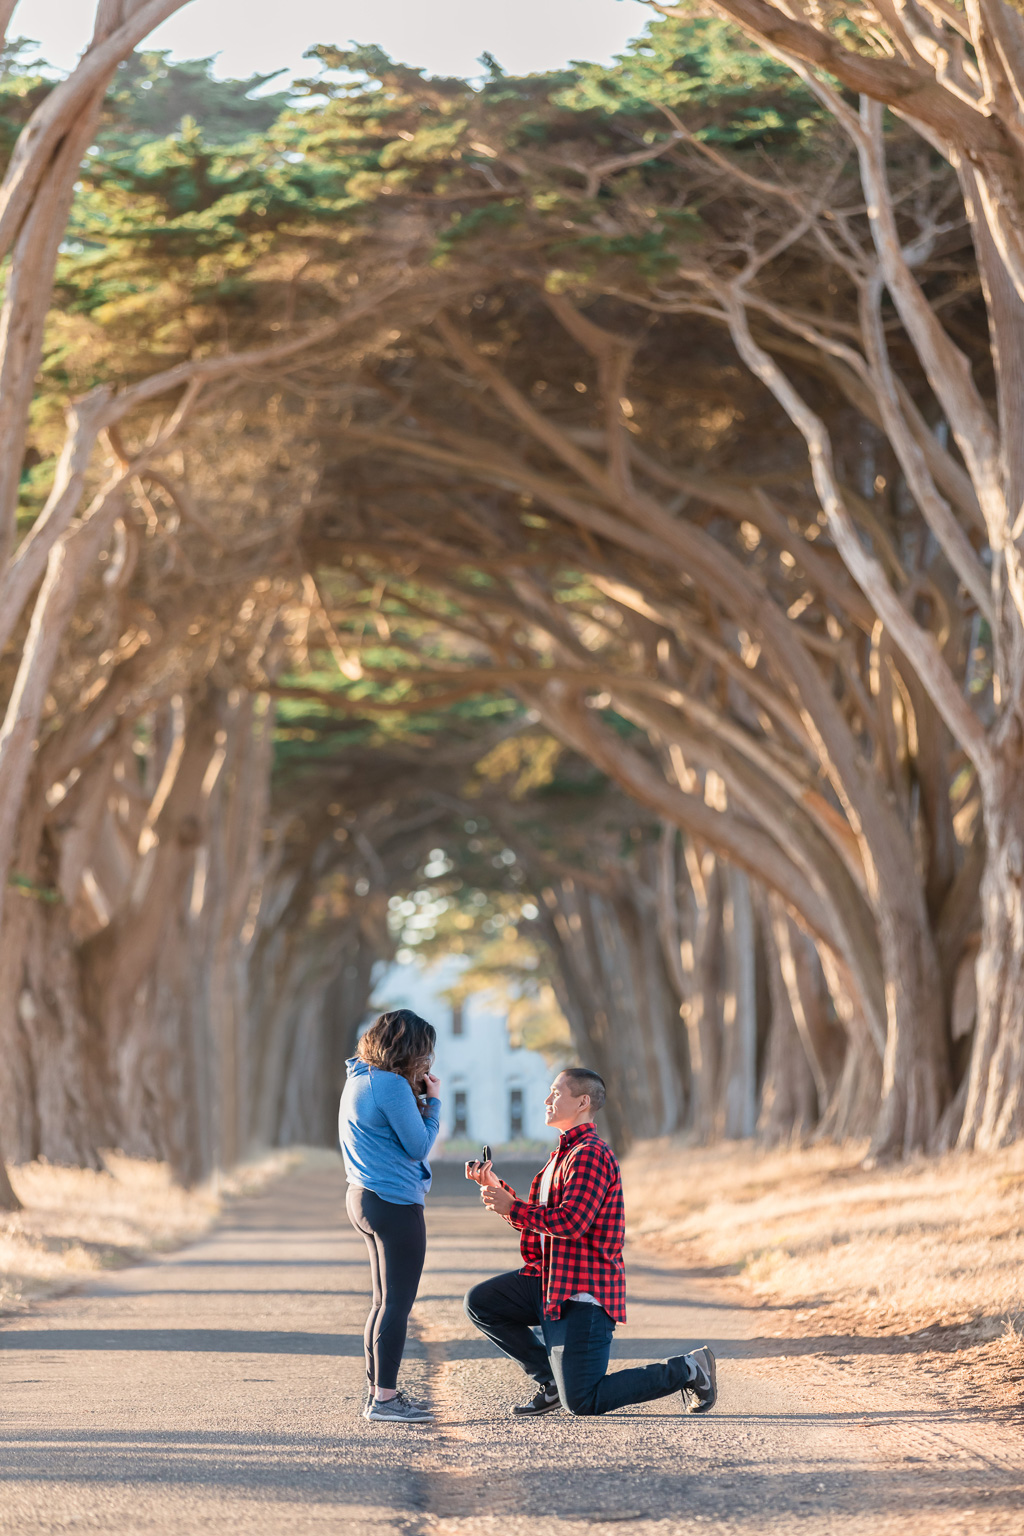 Point Reyes Cypress Tree Tunnel surprise proposal at sunset